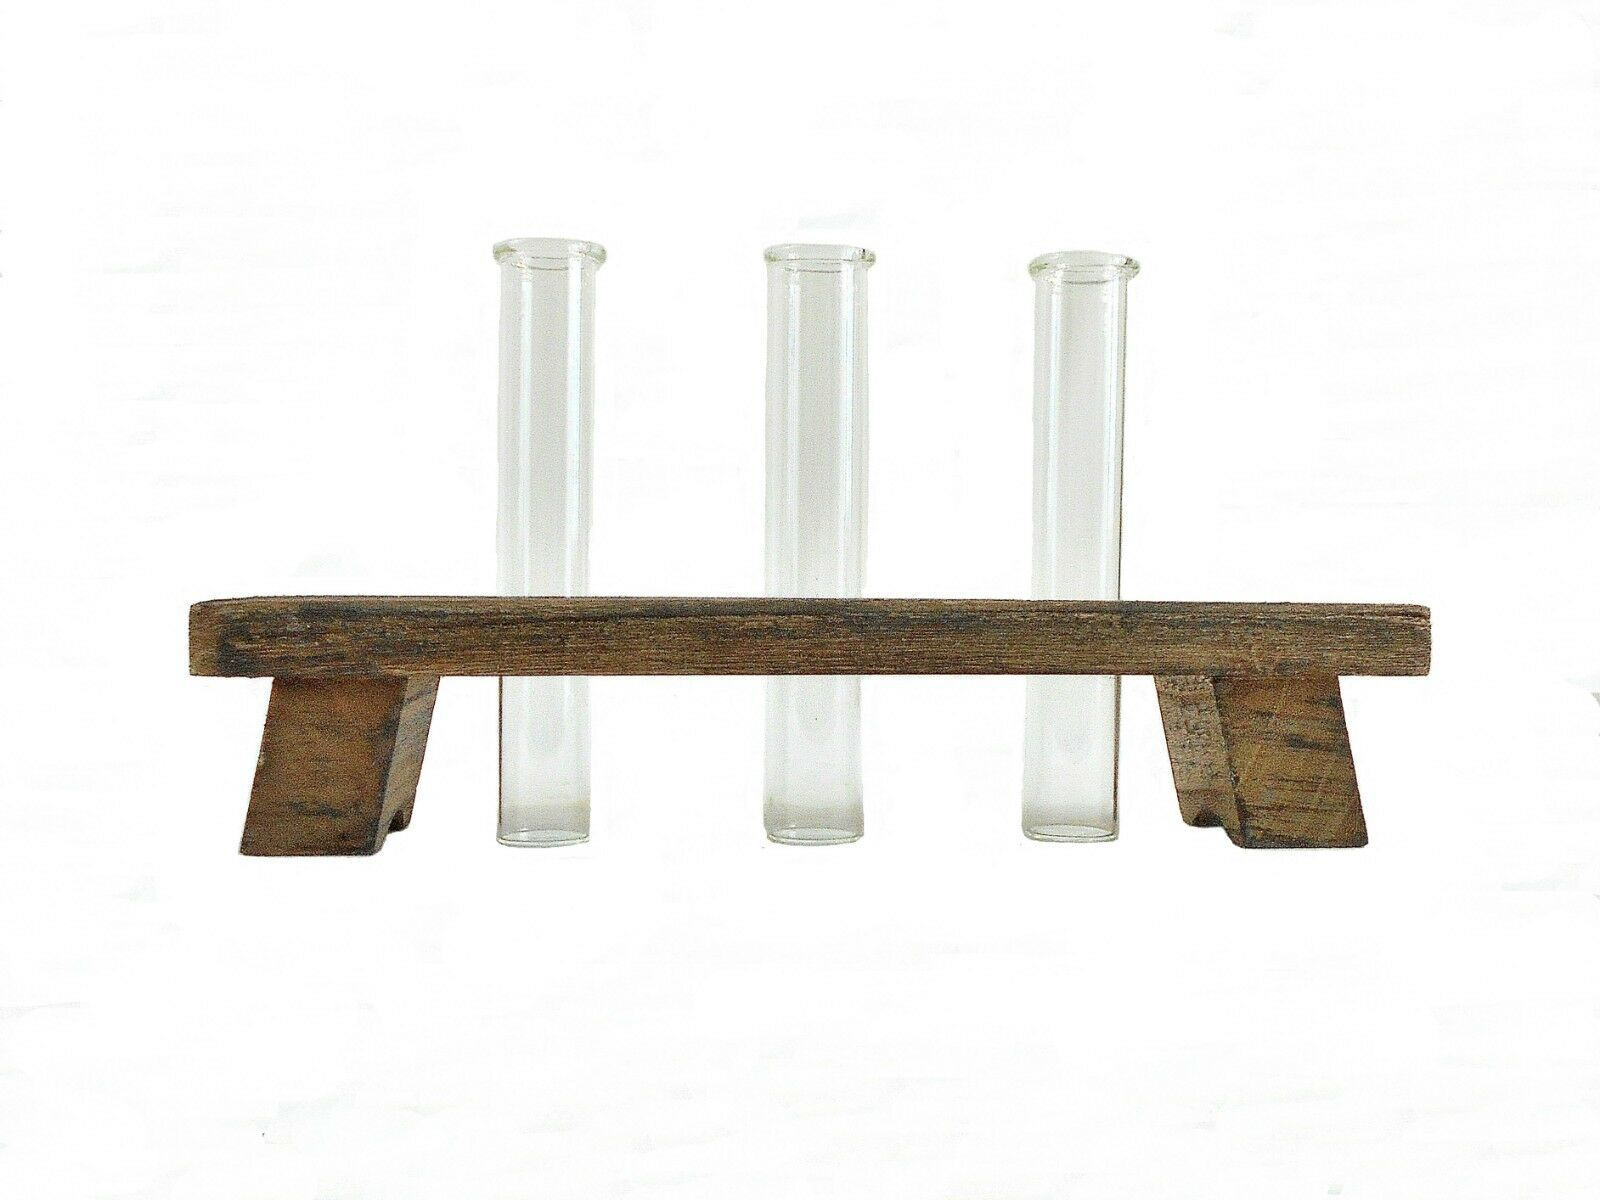 Primary image for Three Glass Tube Bud Vases w/ Rustic Wood Holder - Flower Vases